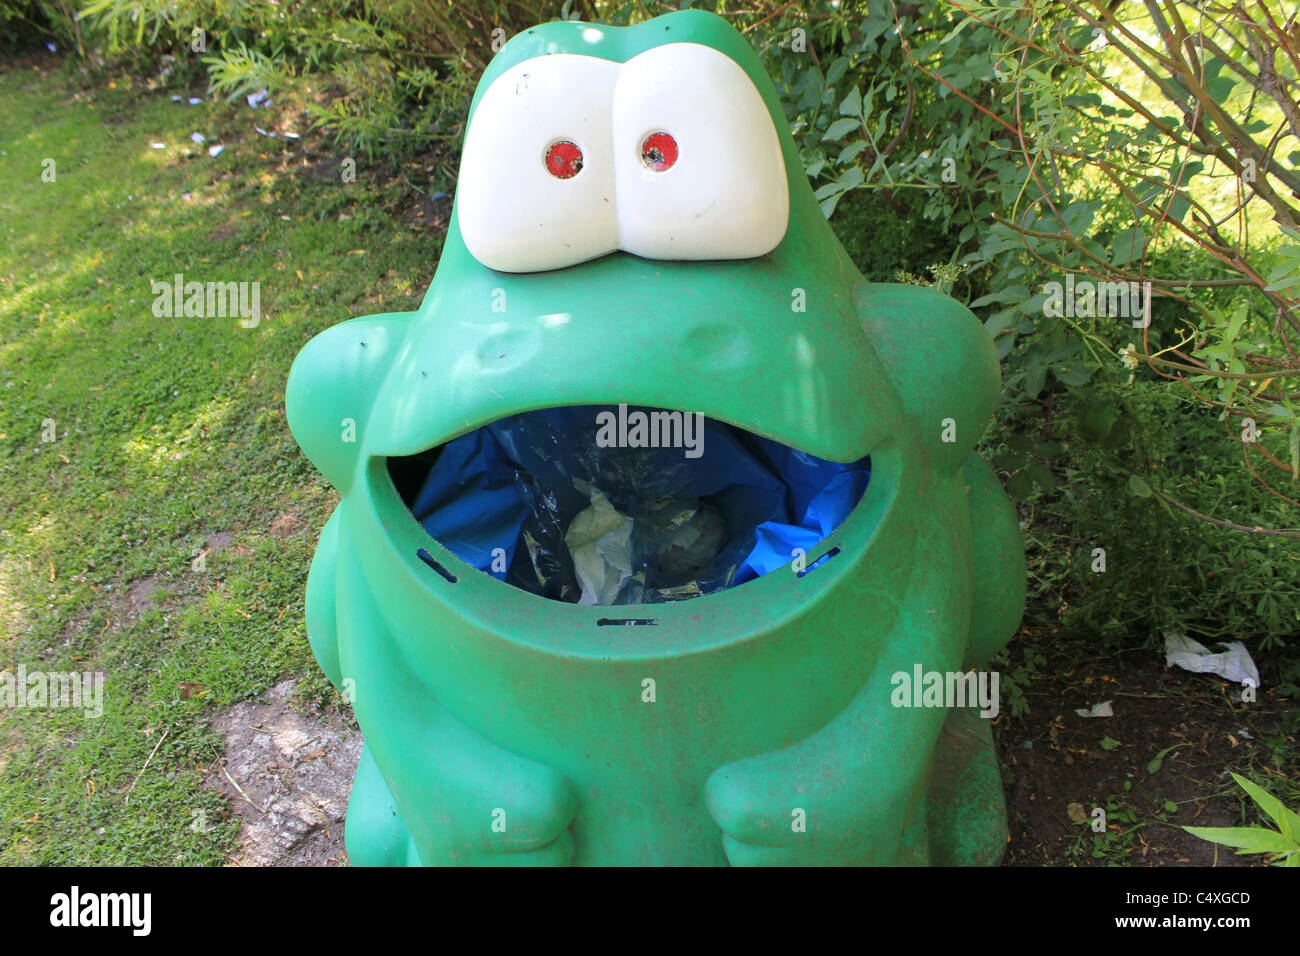 Funny green frog garbage can - Stock Image